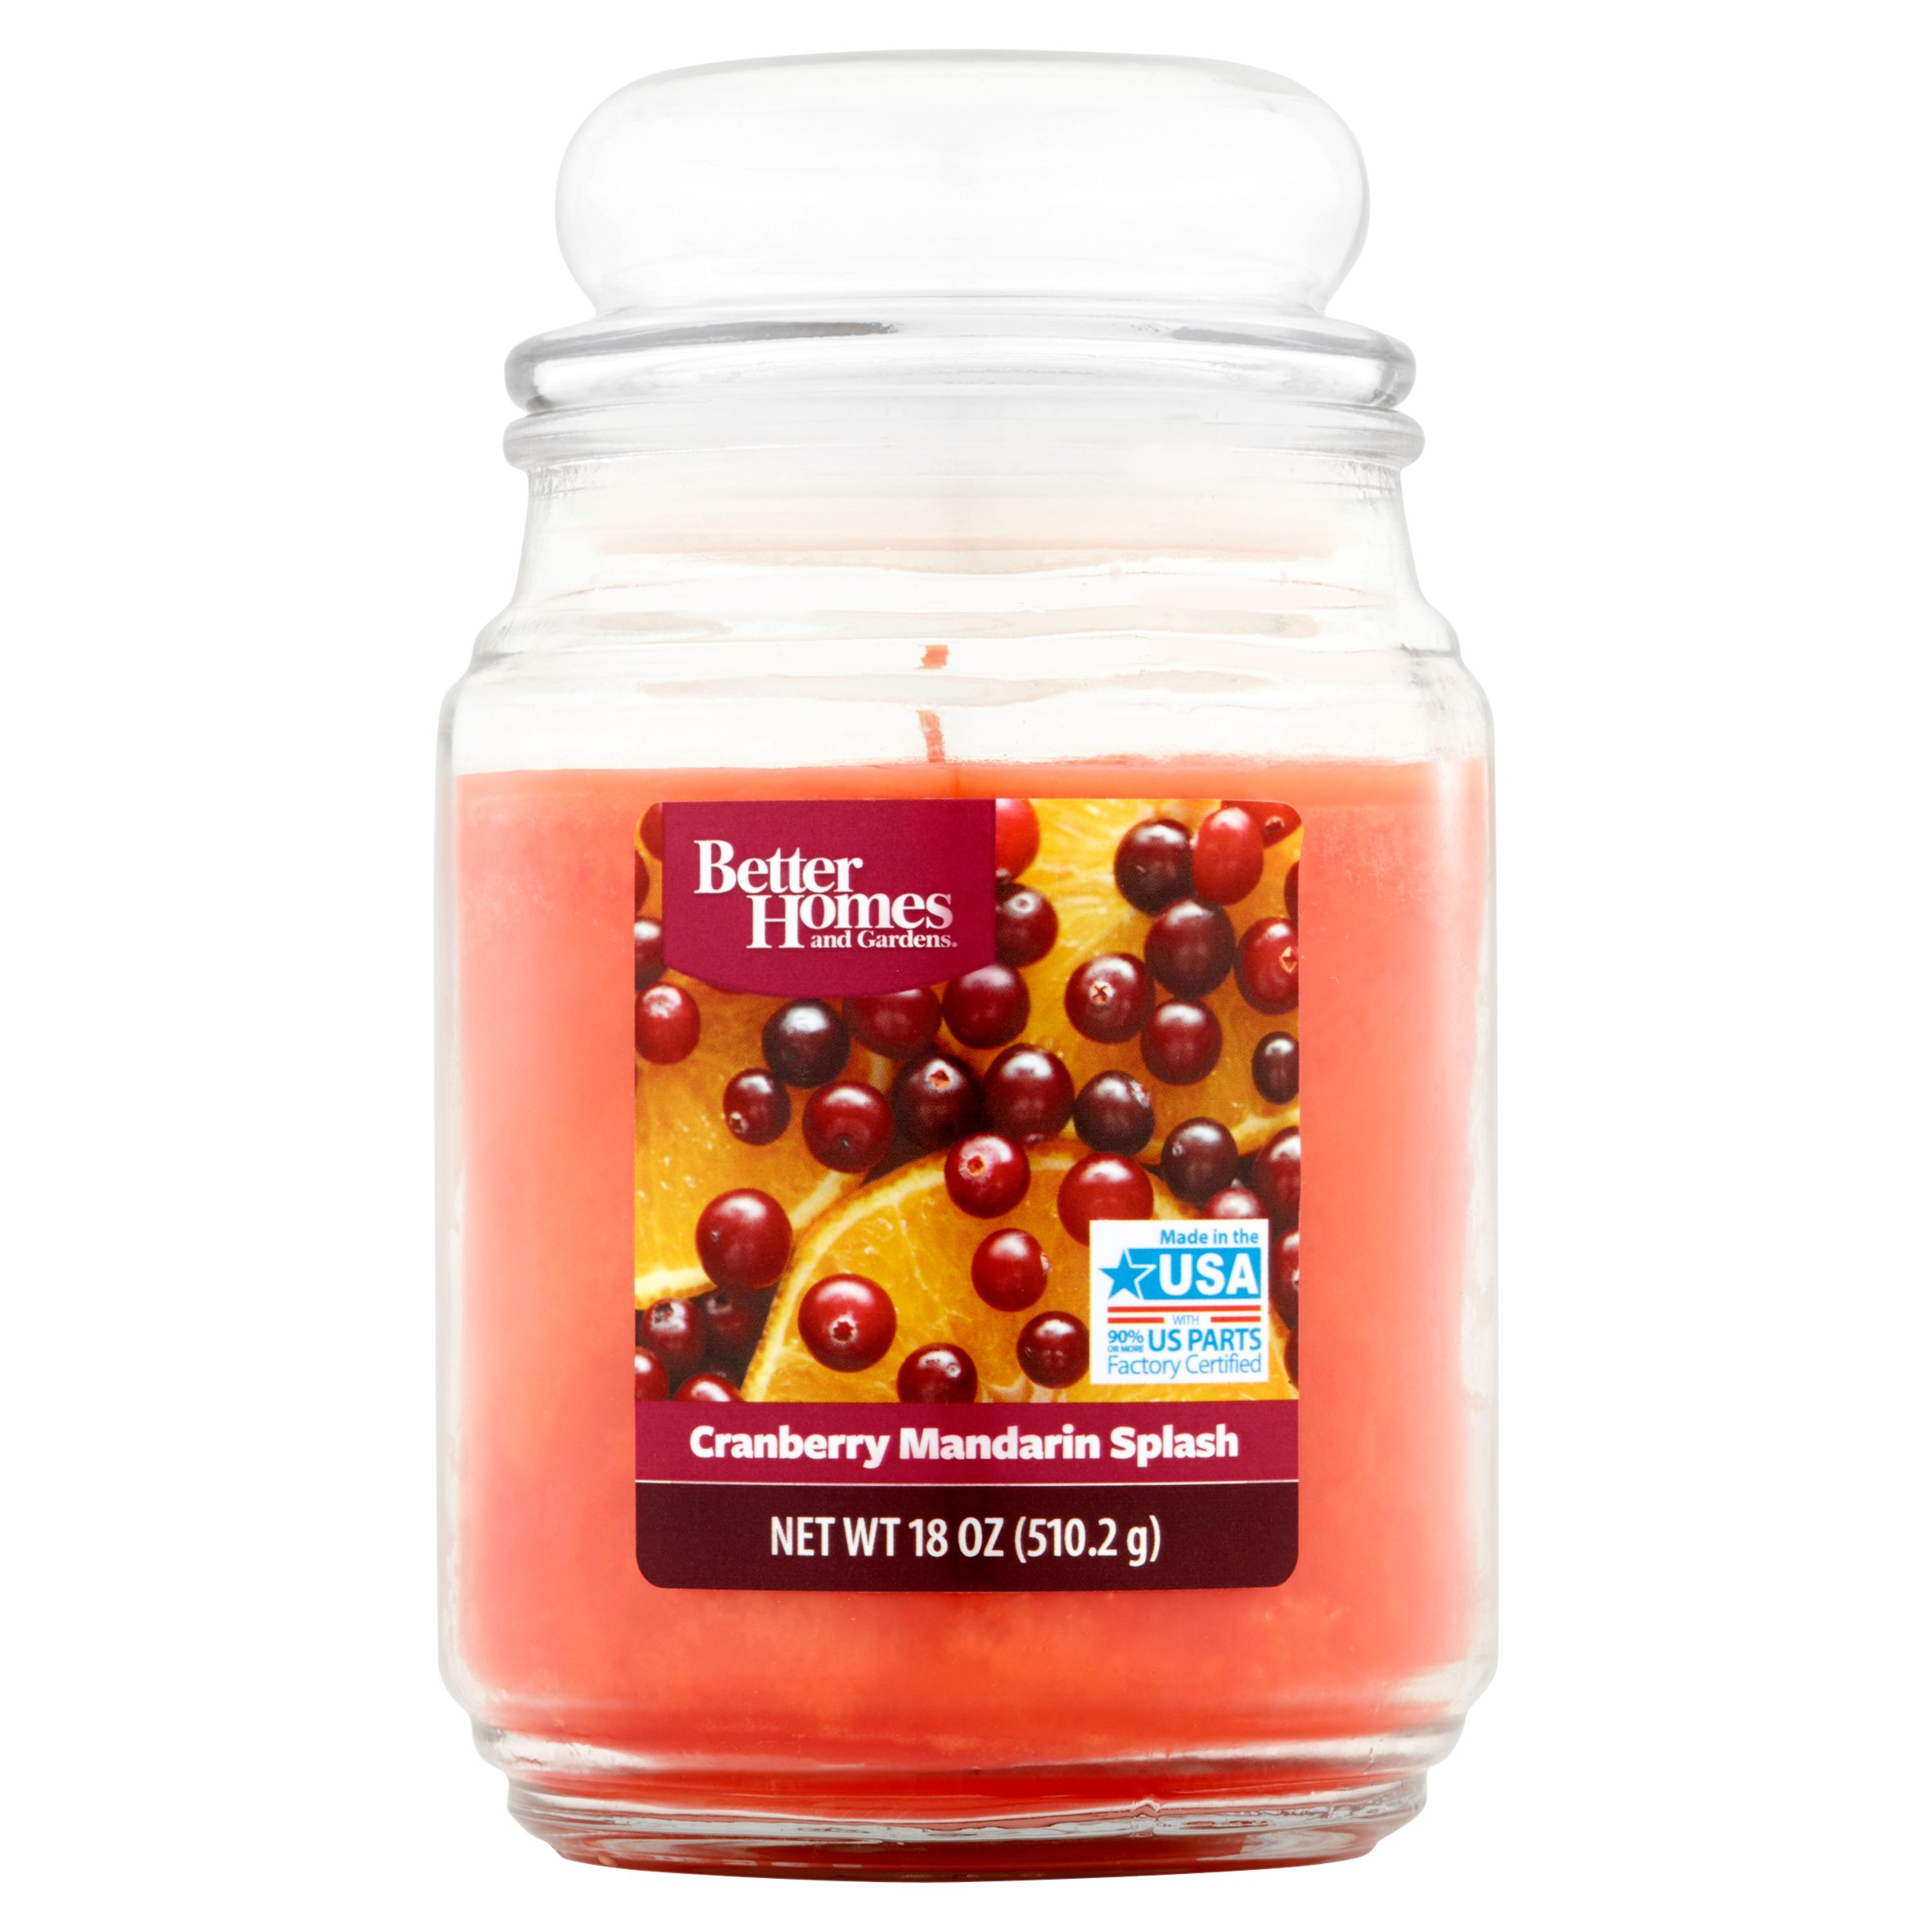 Better Homes and Gardens Cranberry Mandarin Splash Scented Jar Candle, 18 oz